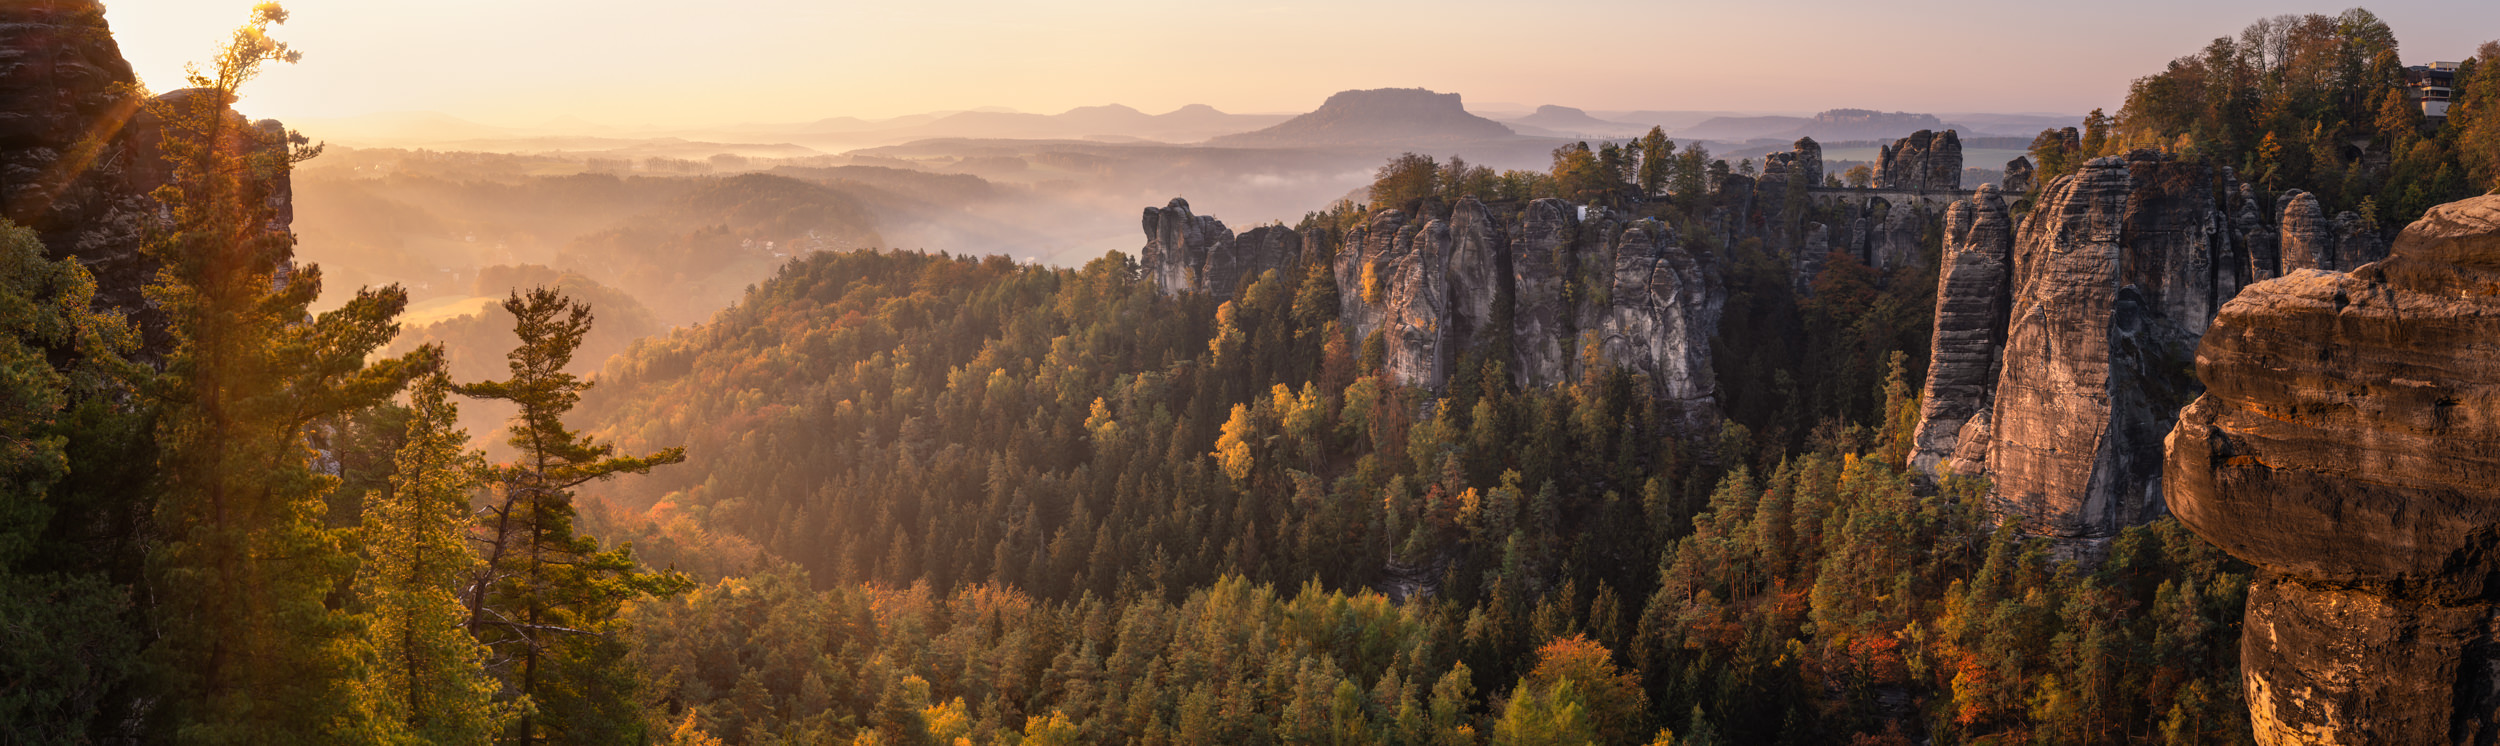 Sunrise at Saxony Switzerland - German Travel Photography